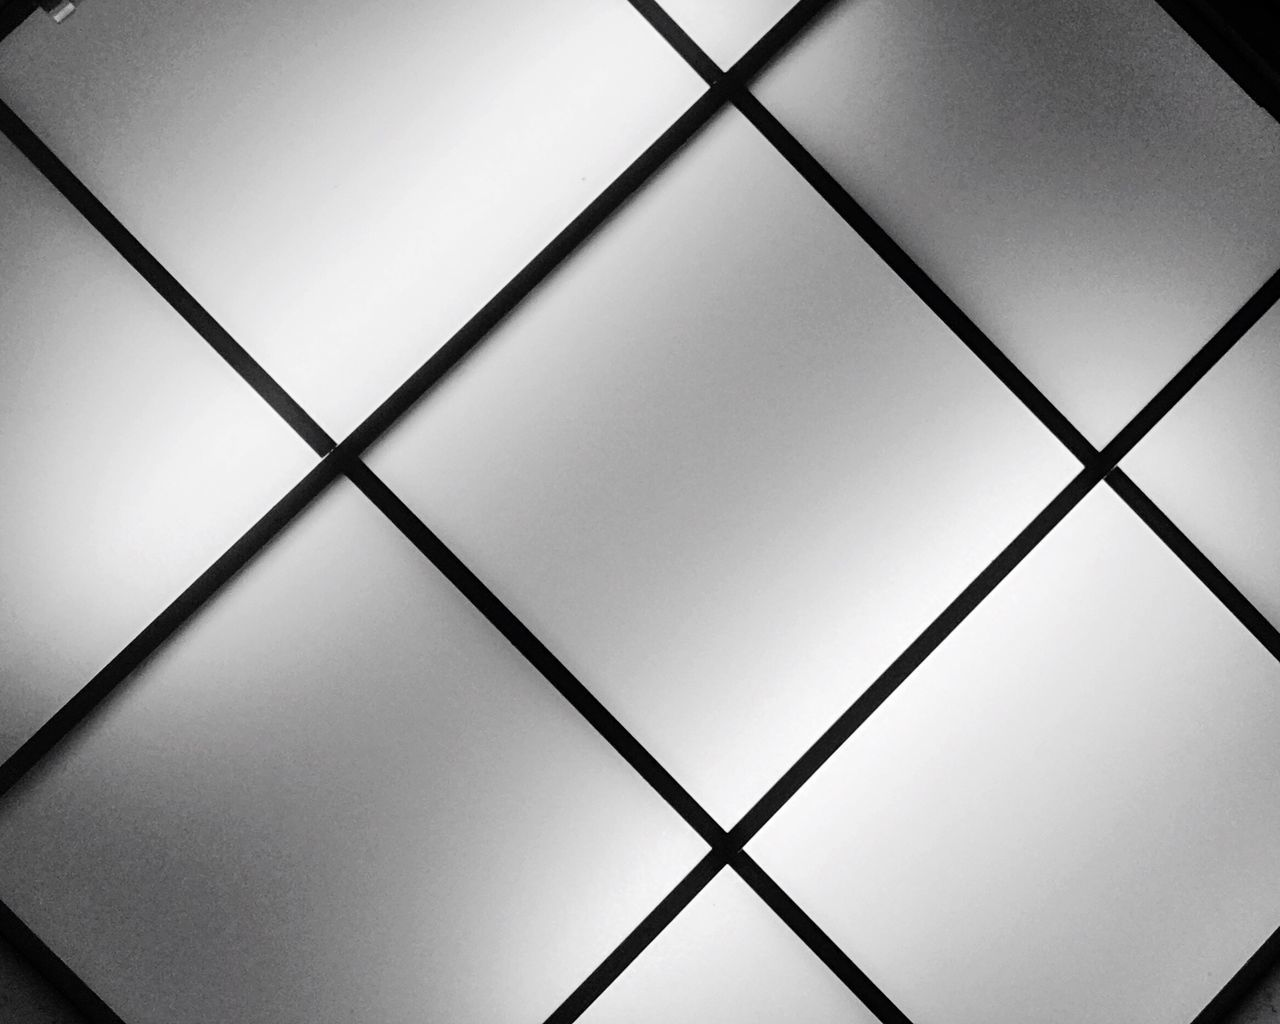 pattern, repetition, indoors, full frame, backgrounds, architecture, no people, built structure, architectural design, low angle view, close-up, modern, day, clear sky, sky